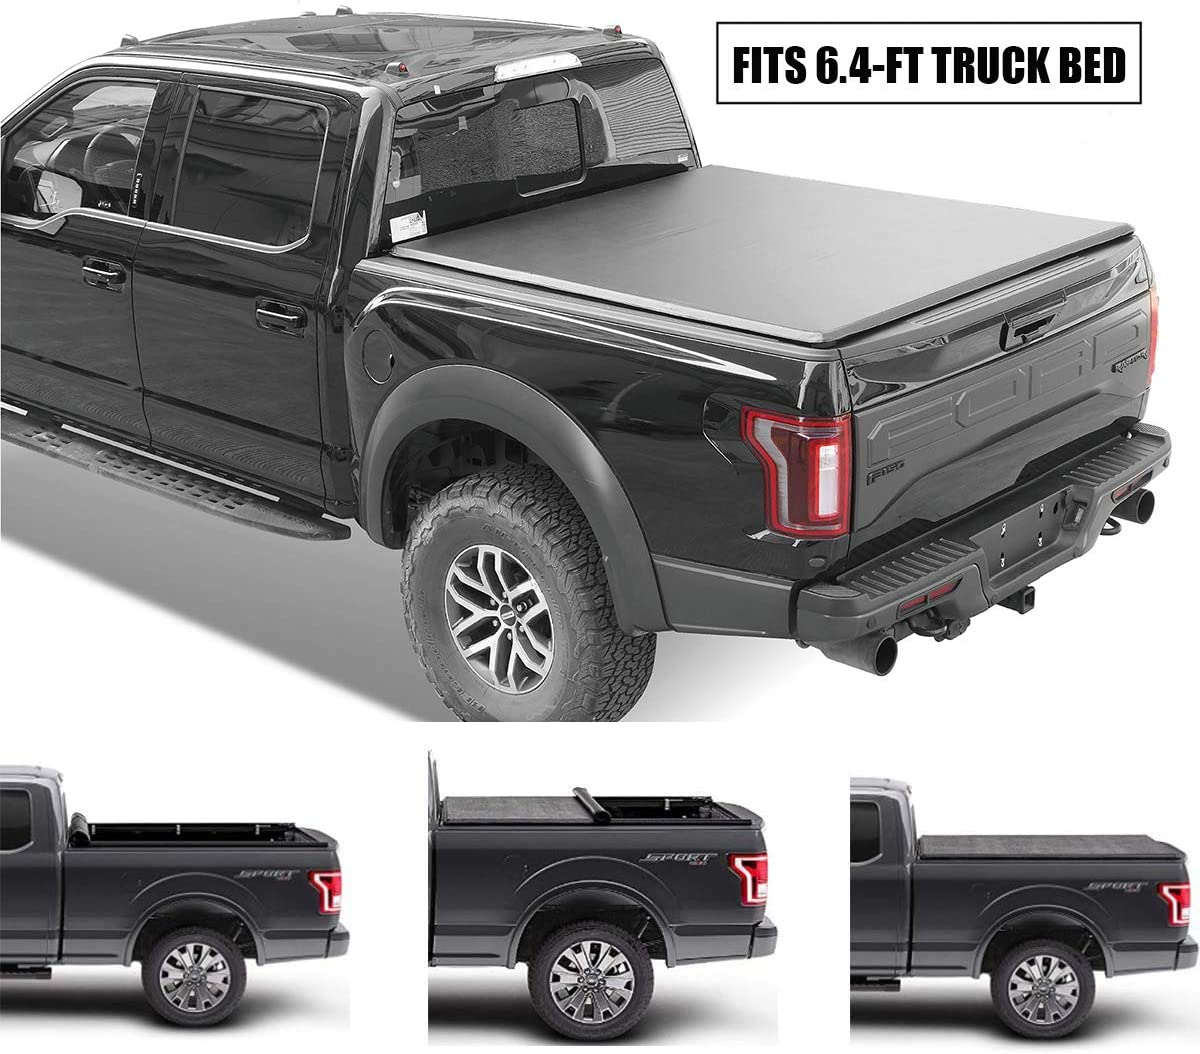 Gevog Soft Roll-Up Truck Bed Tonneau Cover Assembly for 2019-2020 Ram 1500 6.4' (76.3